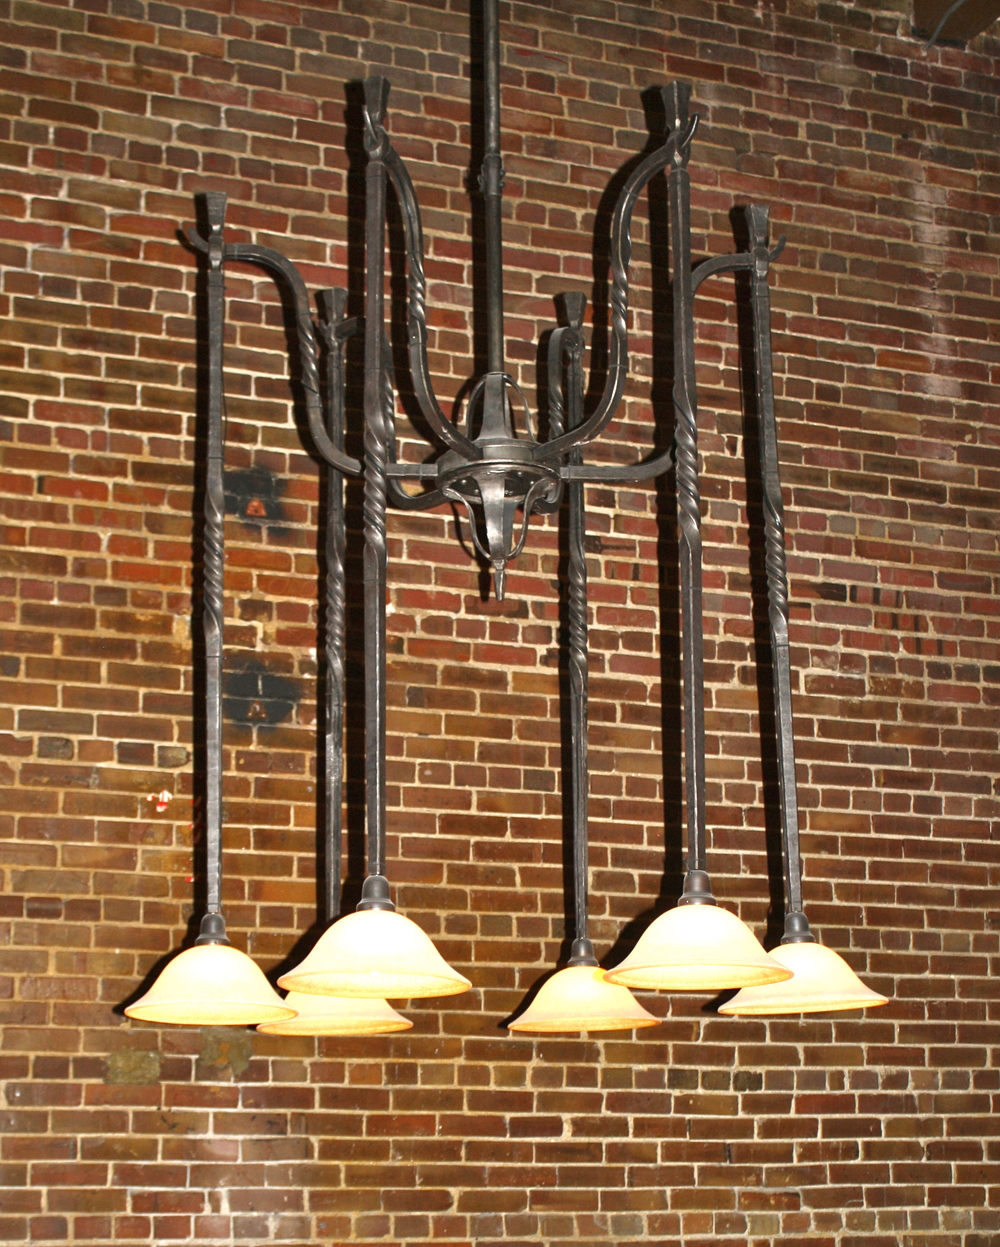 Lighting fixture designed and forged by Robert Thomas at Artisans of the Anvil Inc.